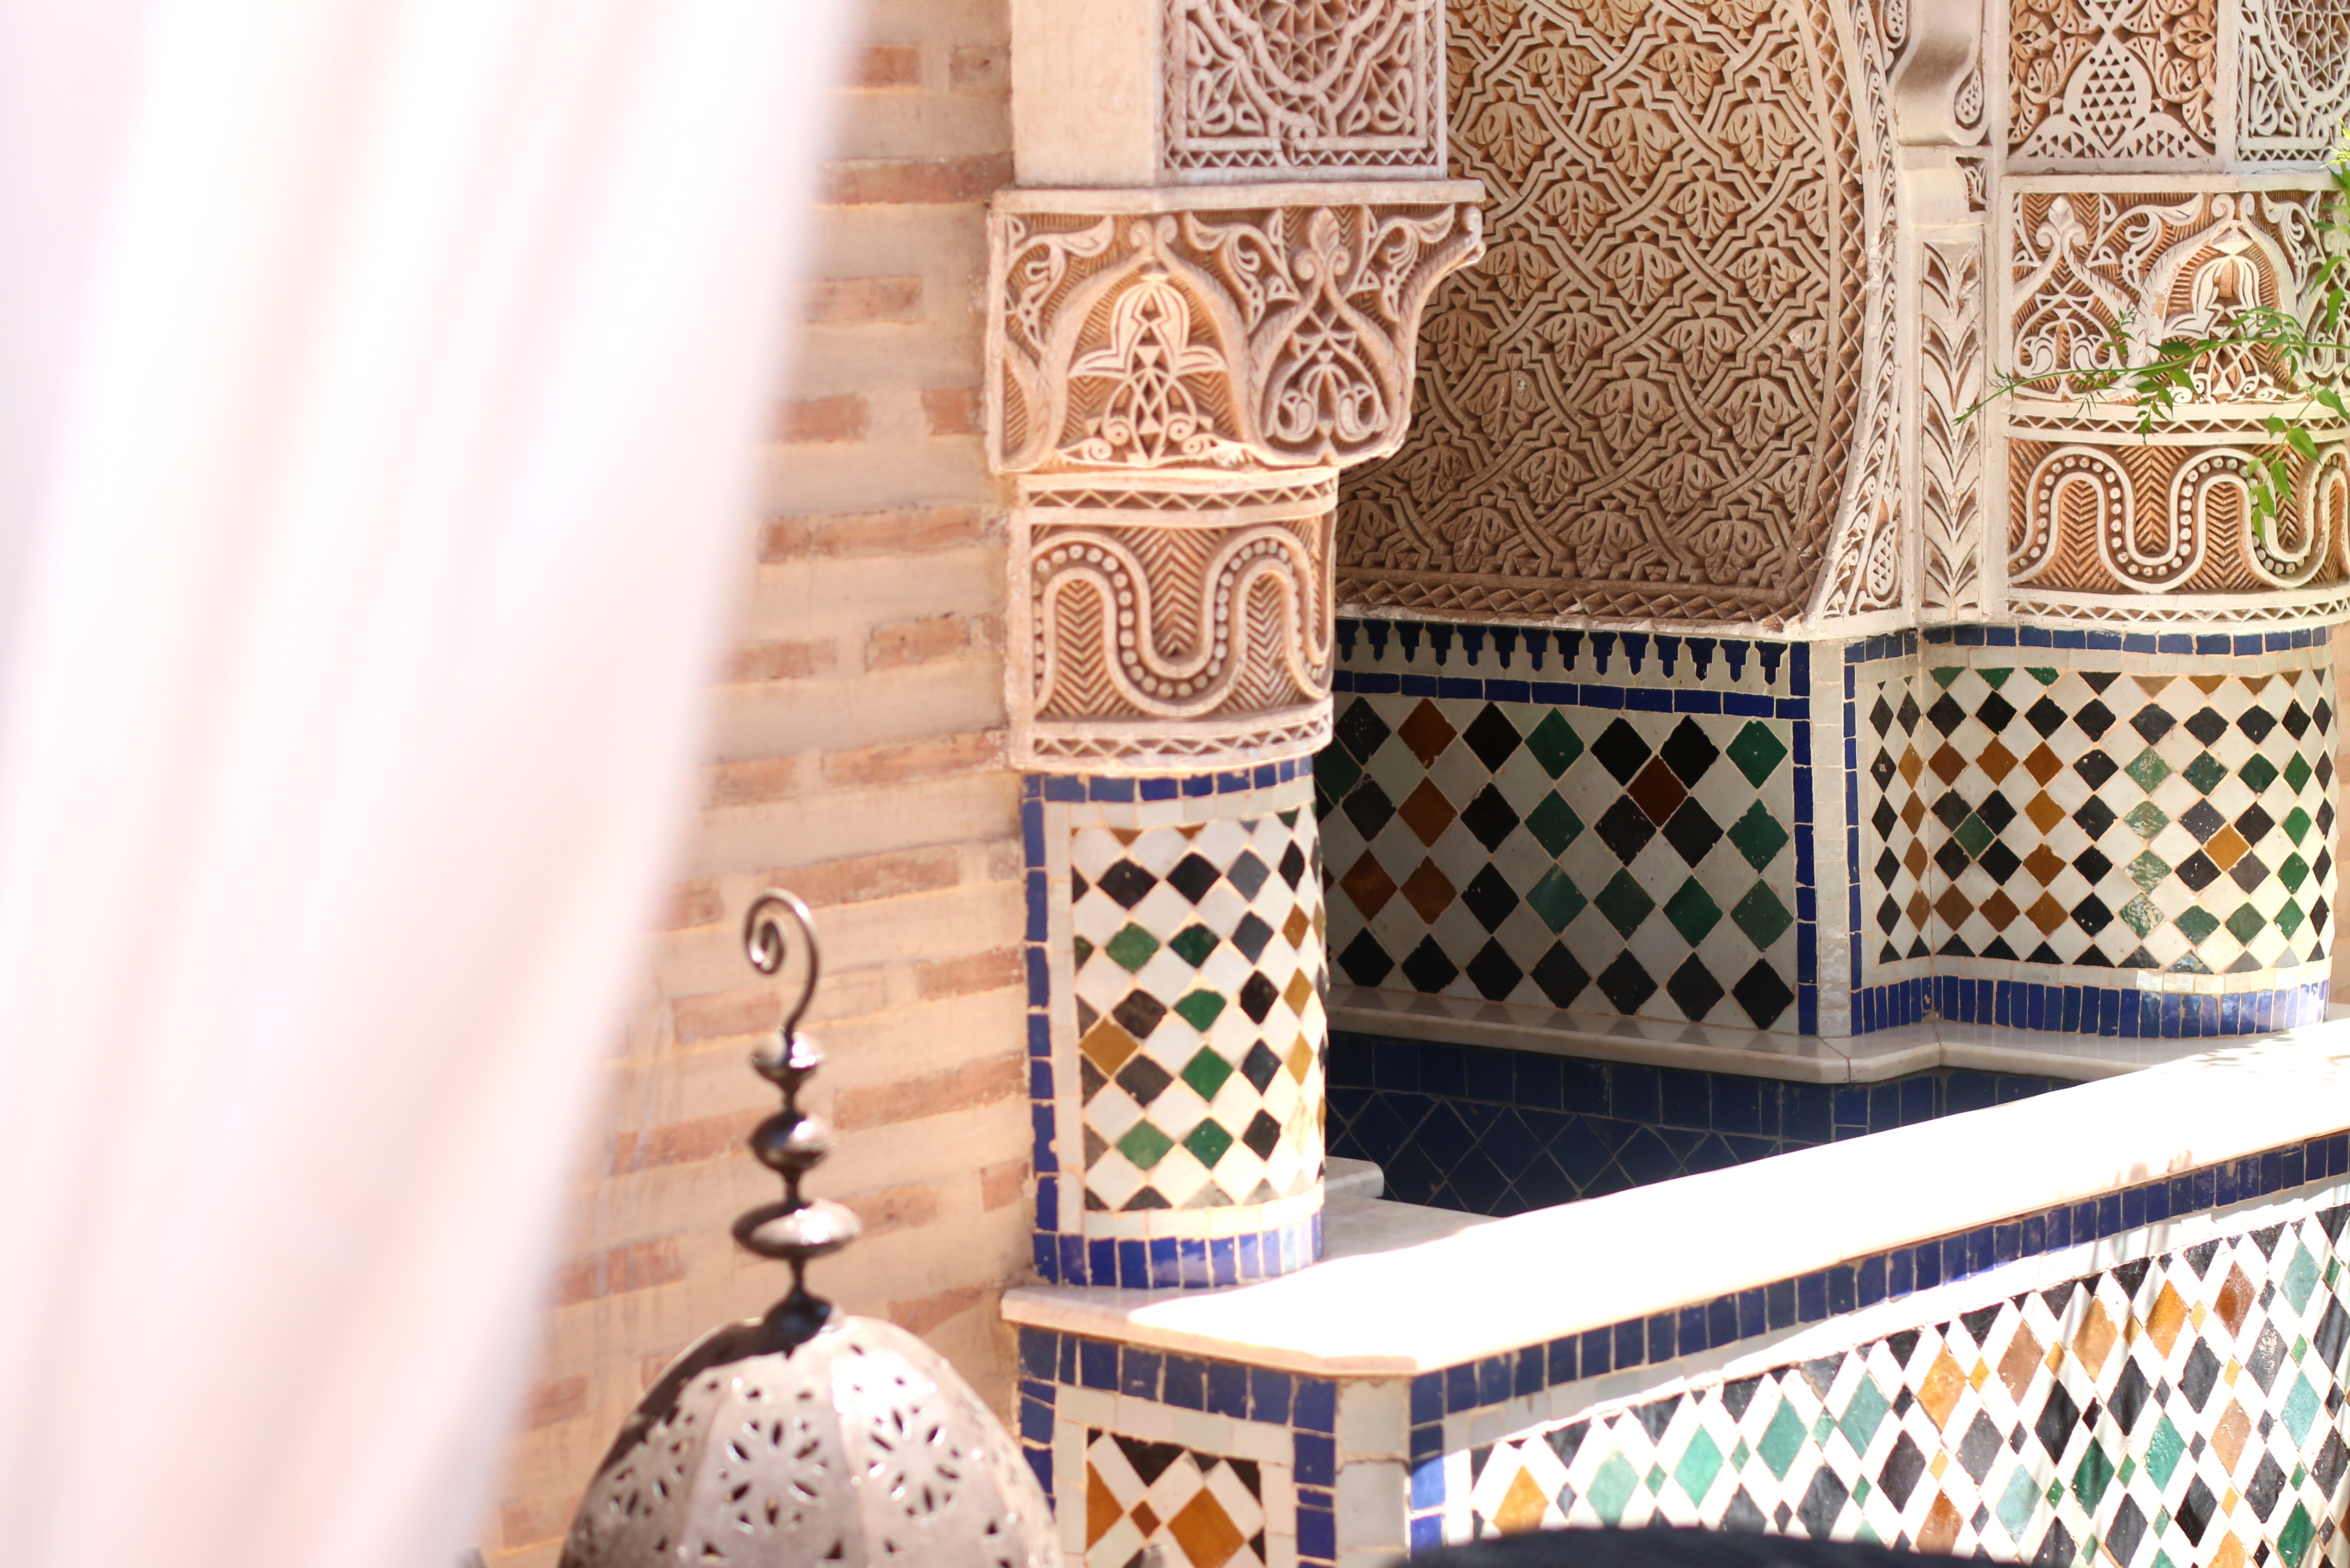 la sultana marrakech travelblog review hotel review experience travelguide hotelguide